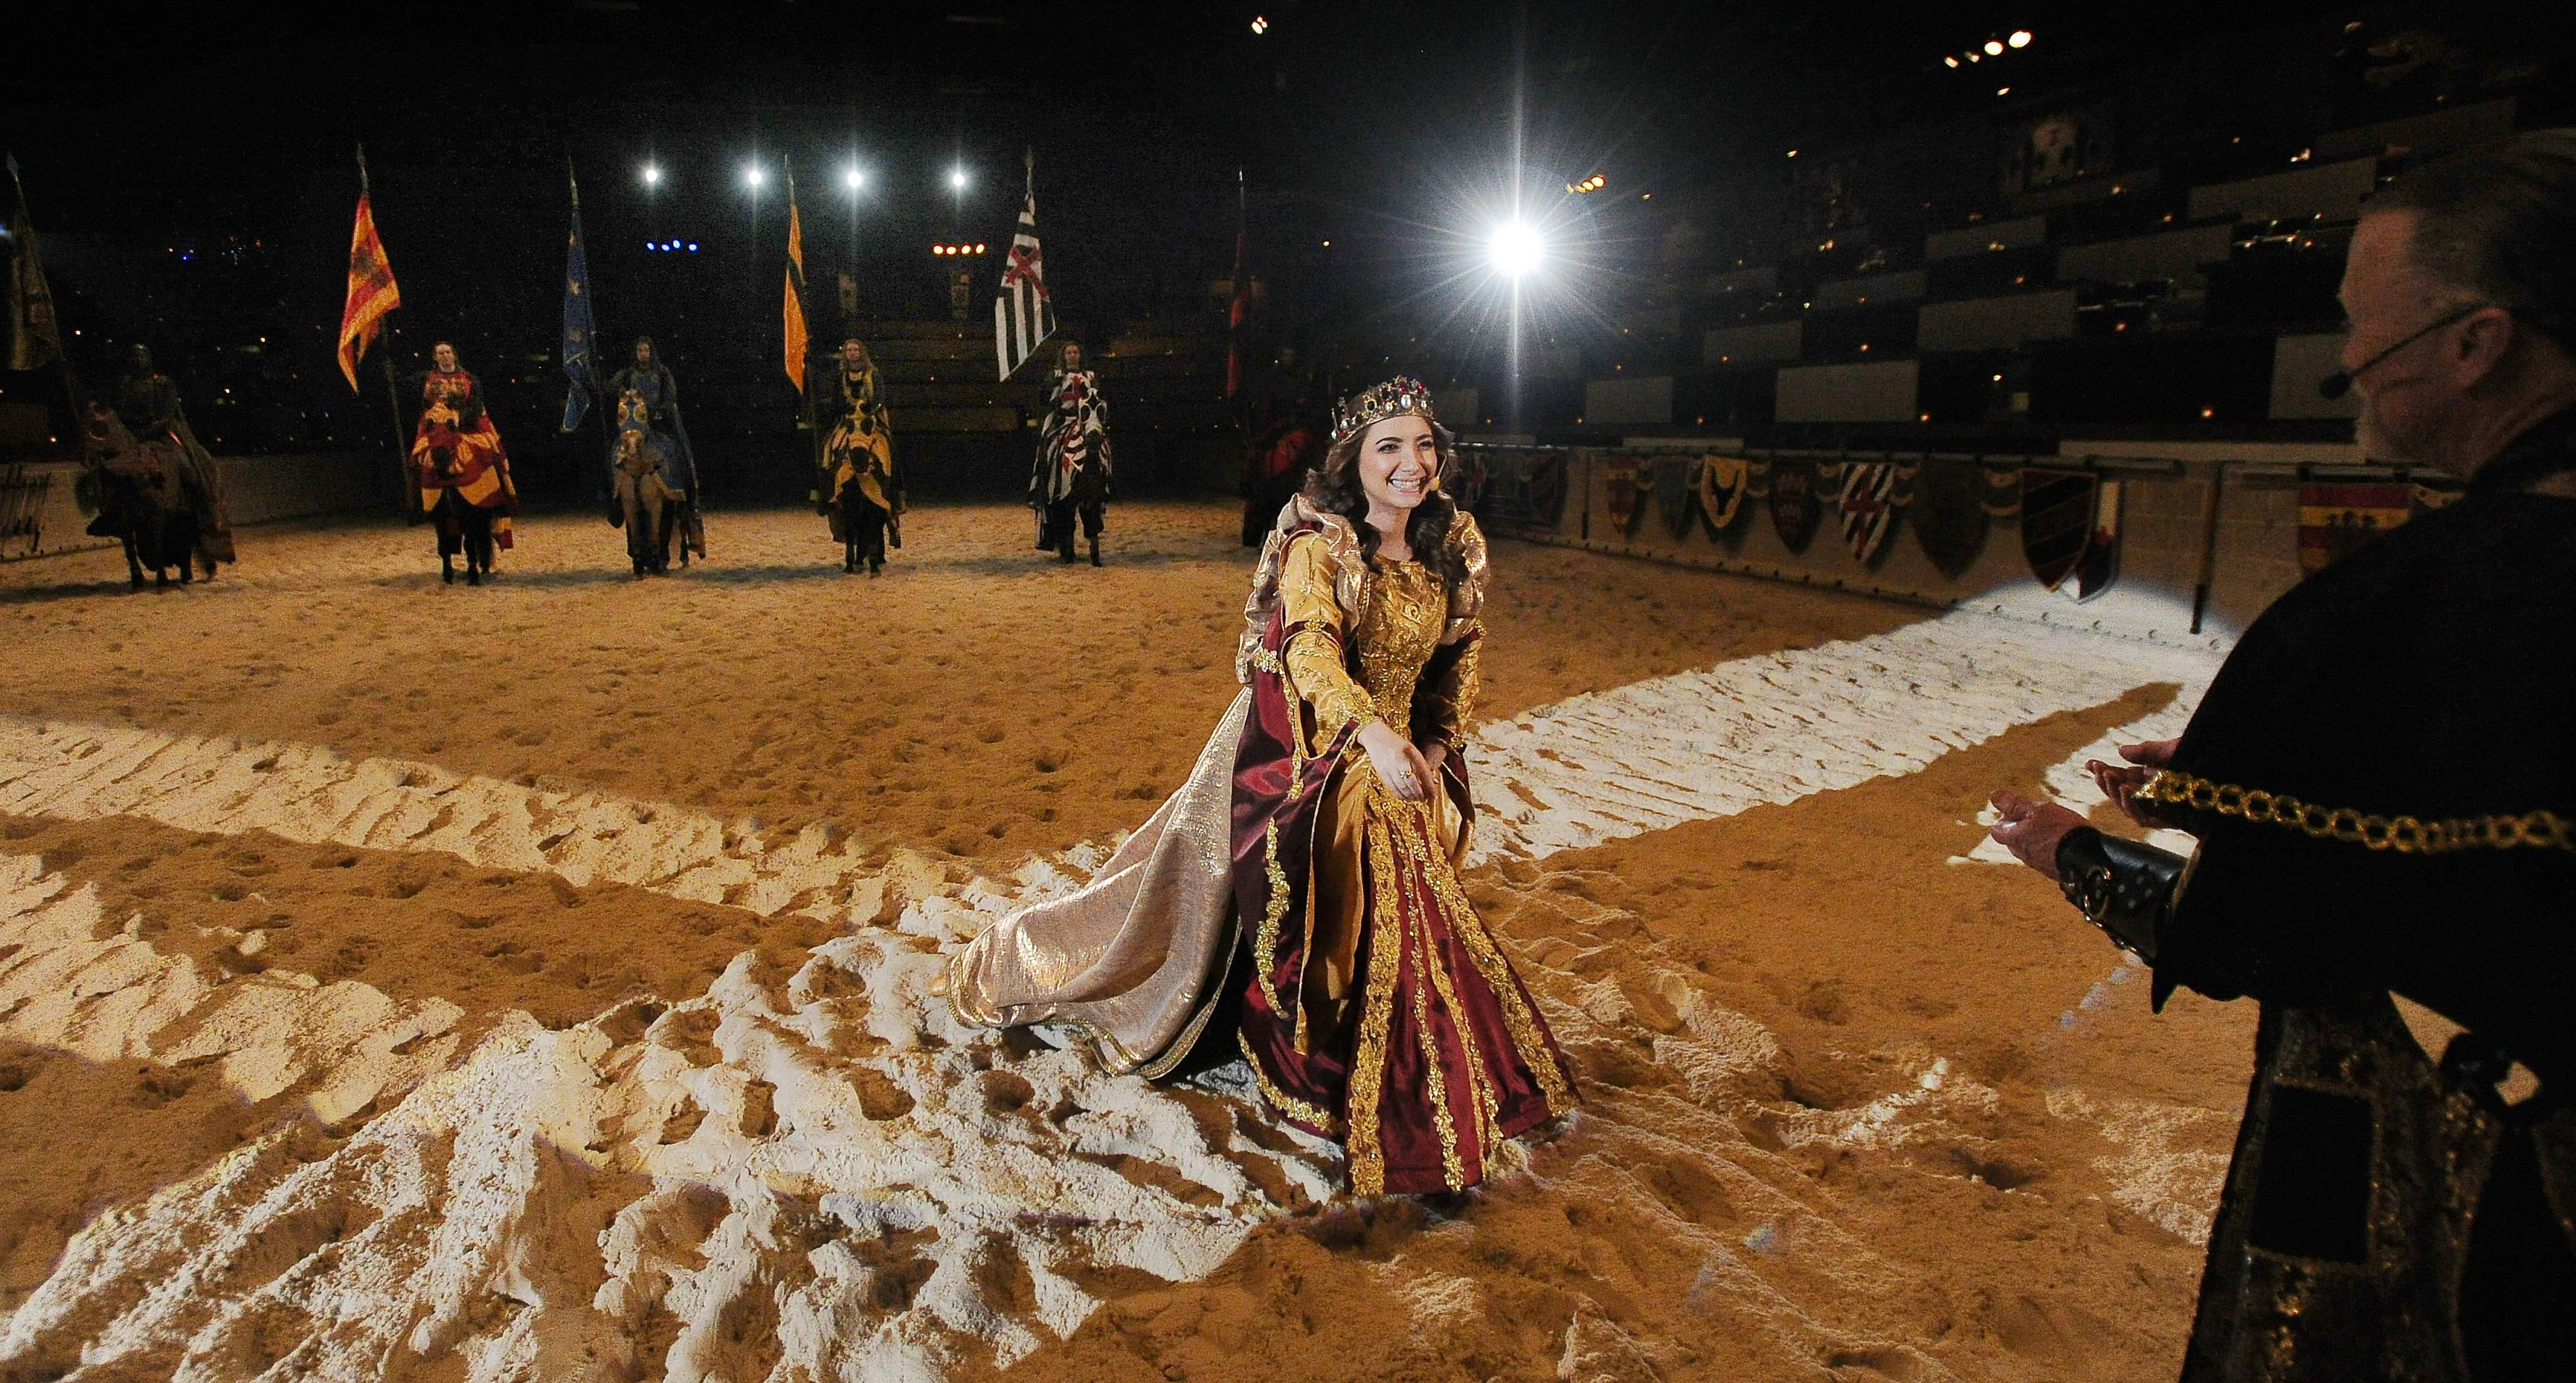 Sara Schubring rehearses for her new role as the queen at Medieval Times in Schaumburg.